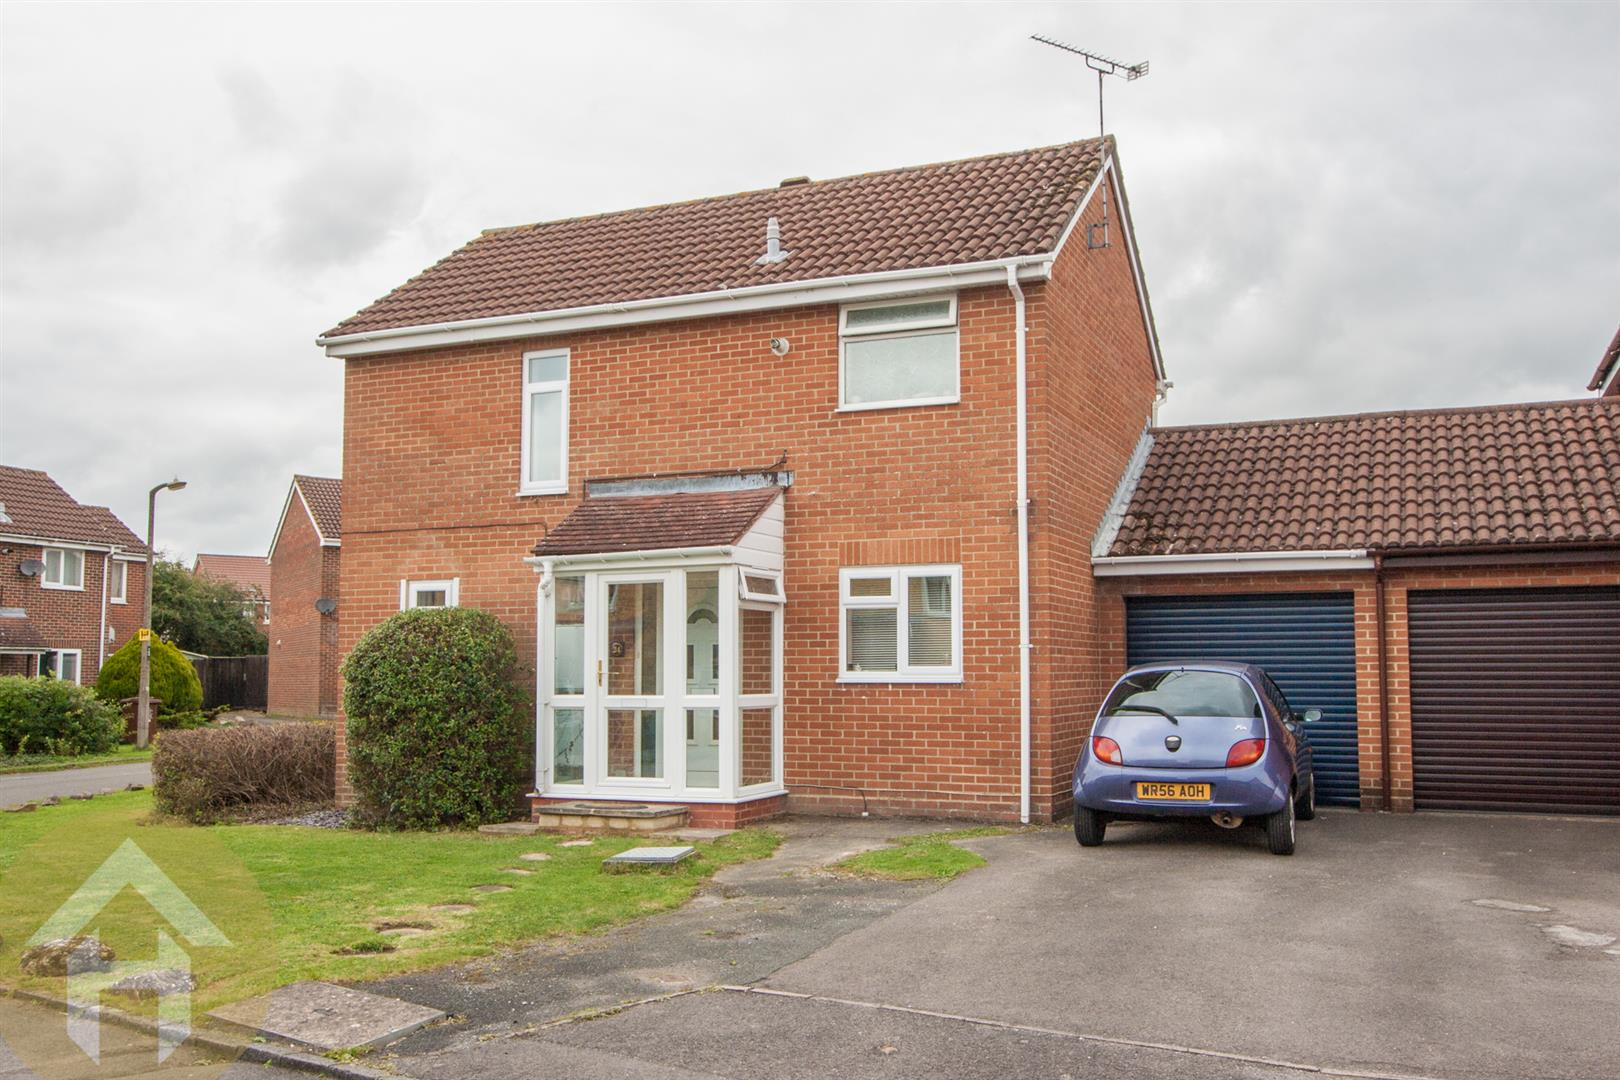 3 Bedrooms Link Detached House for sale in Woodshaw, Royal Wootton Bassett